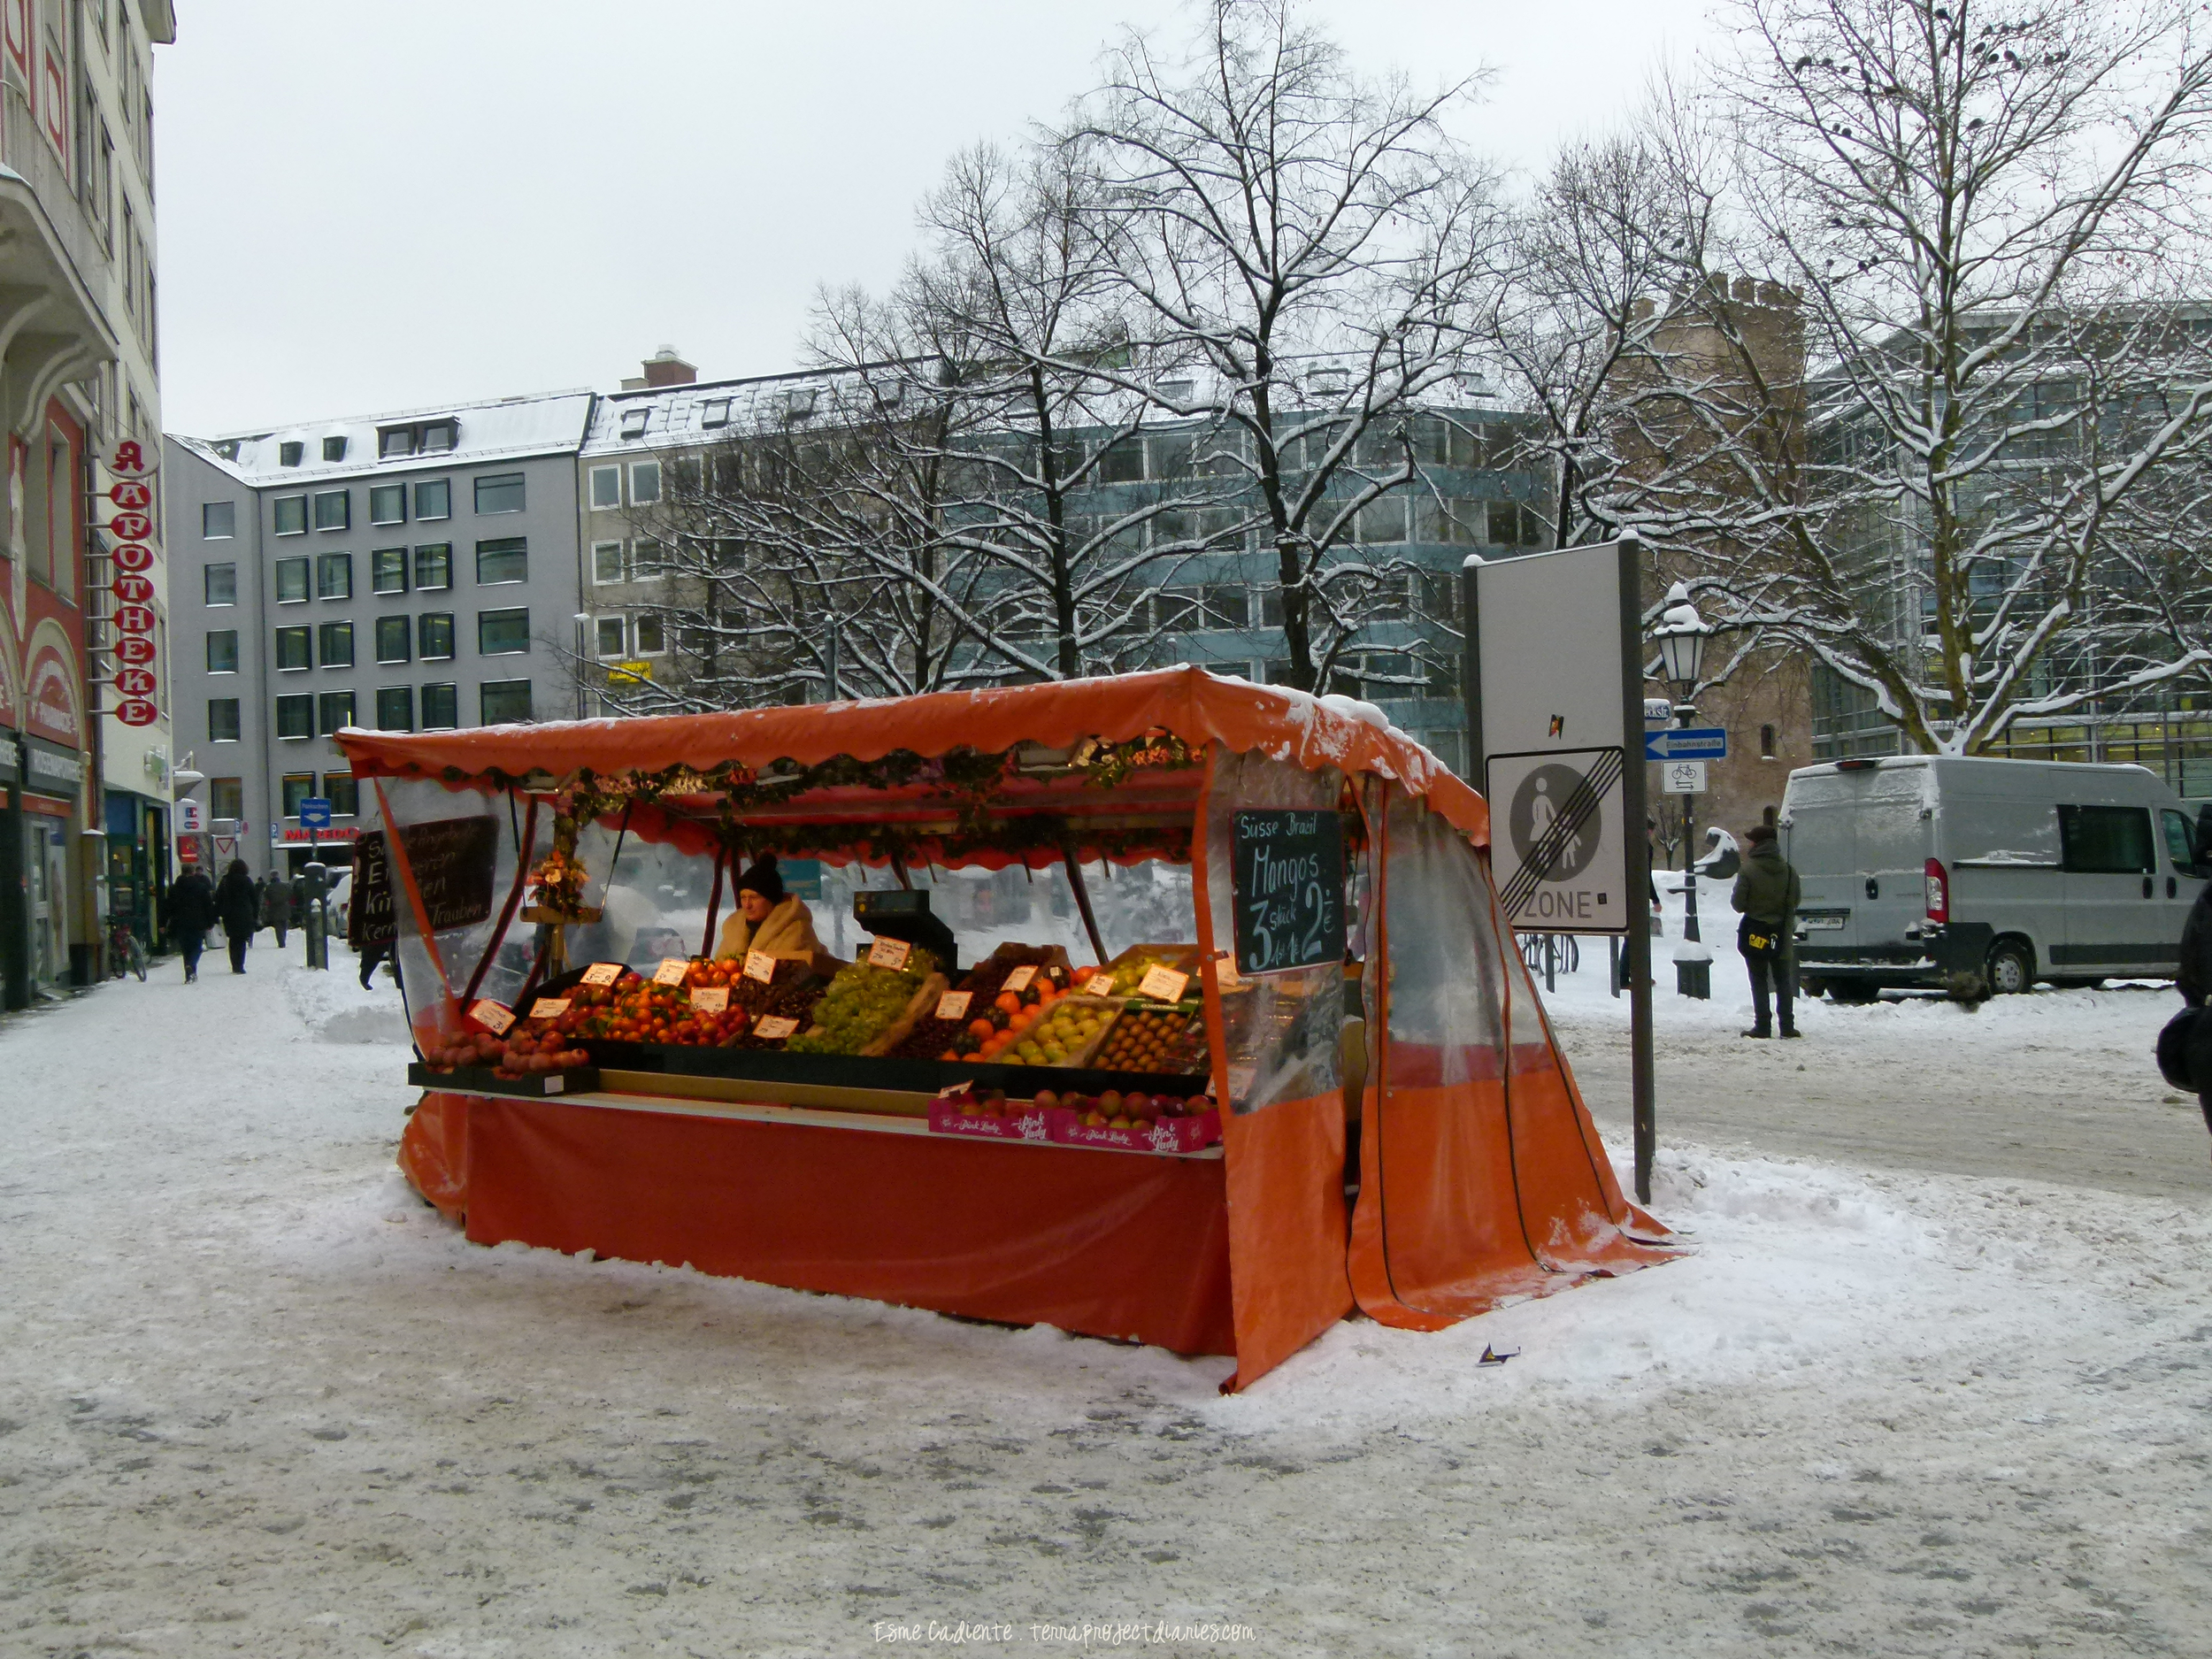 Winter fruitstand, Germany